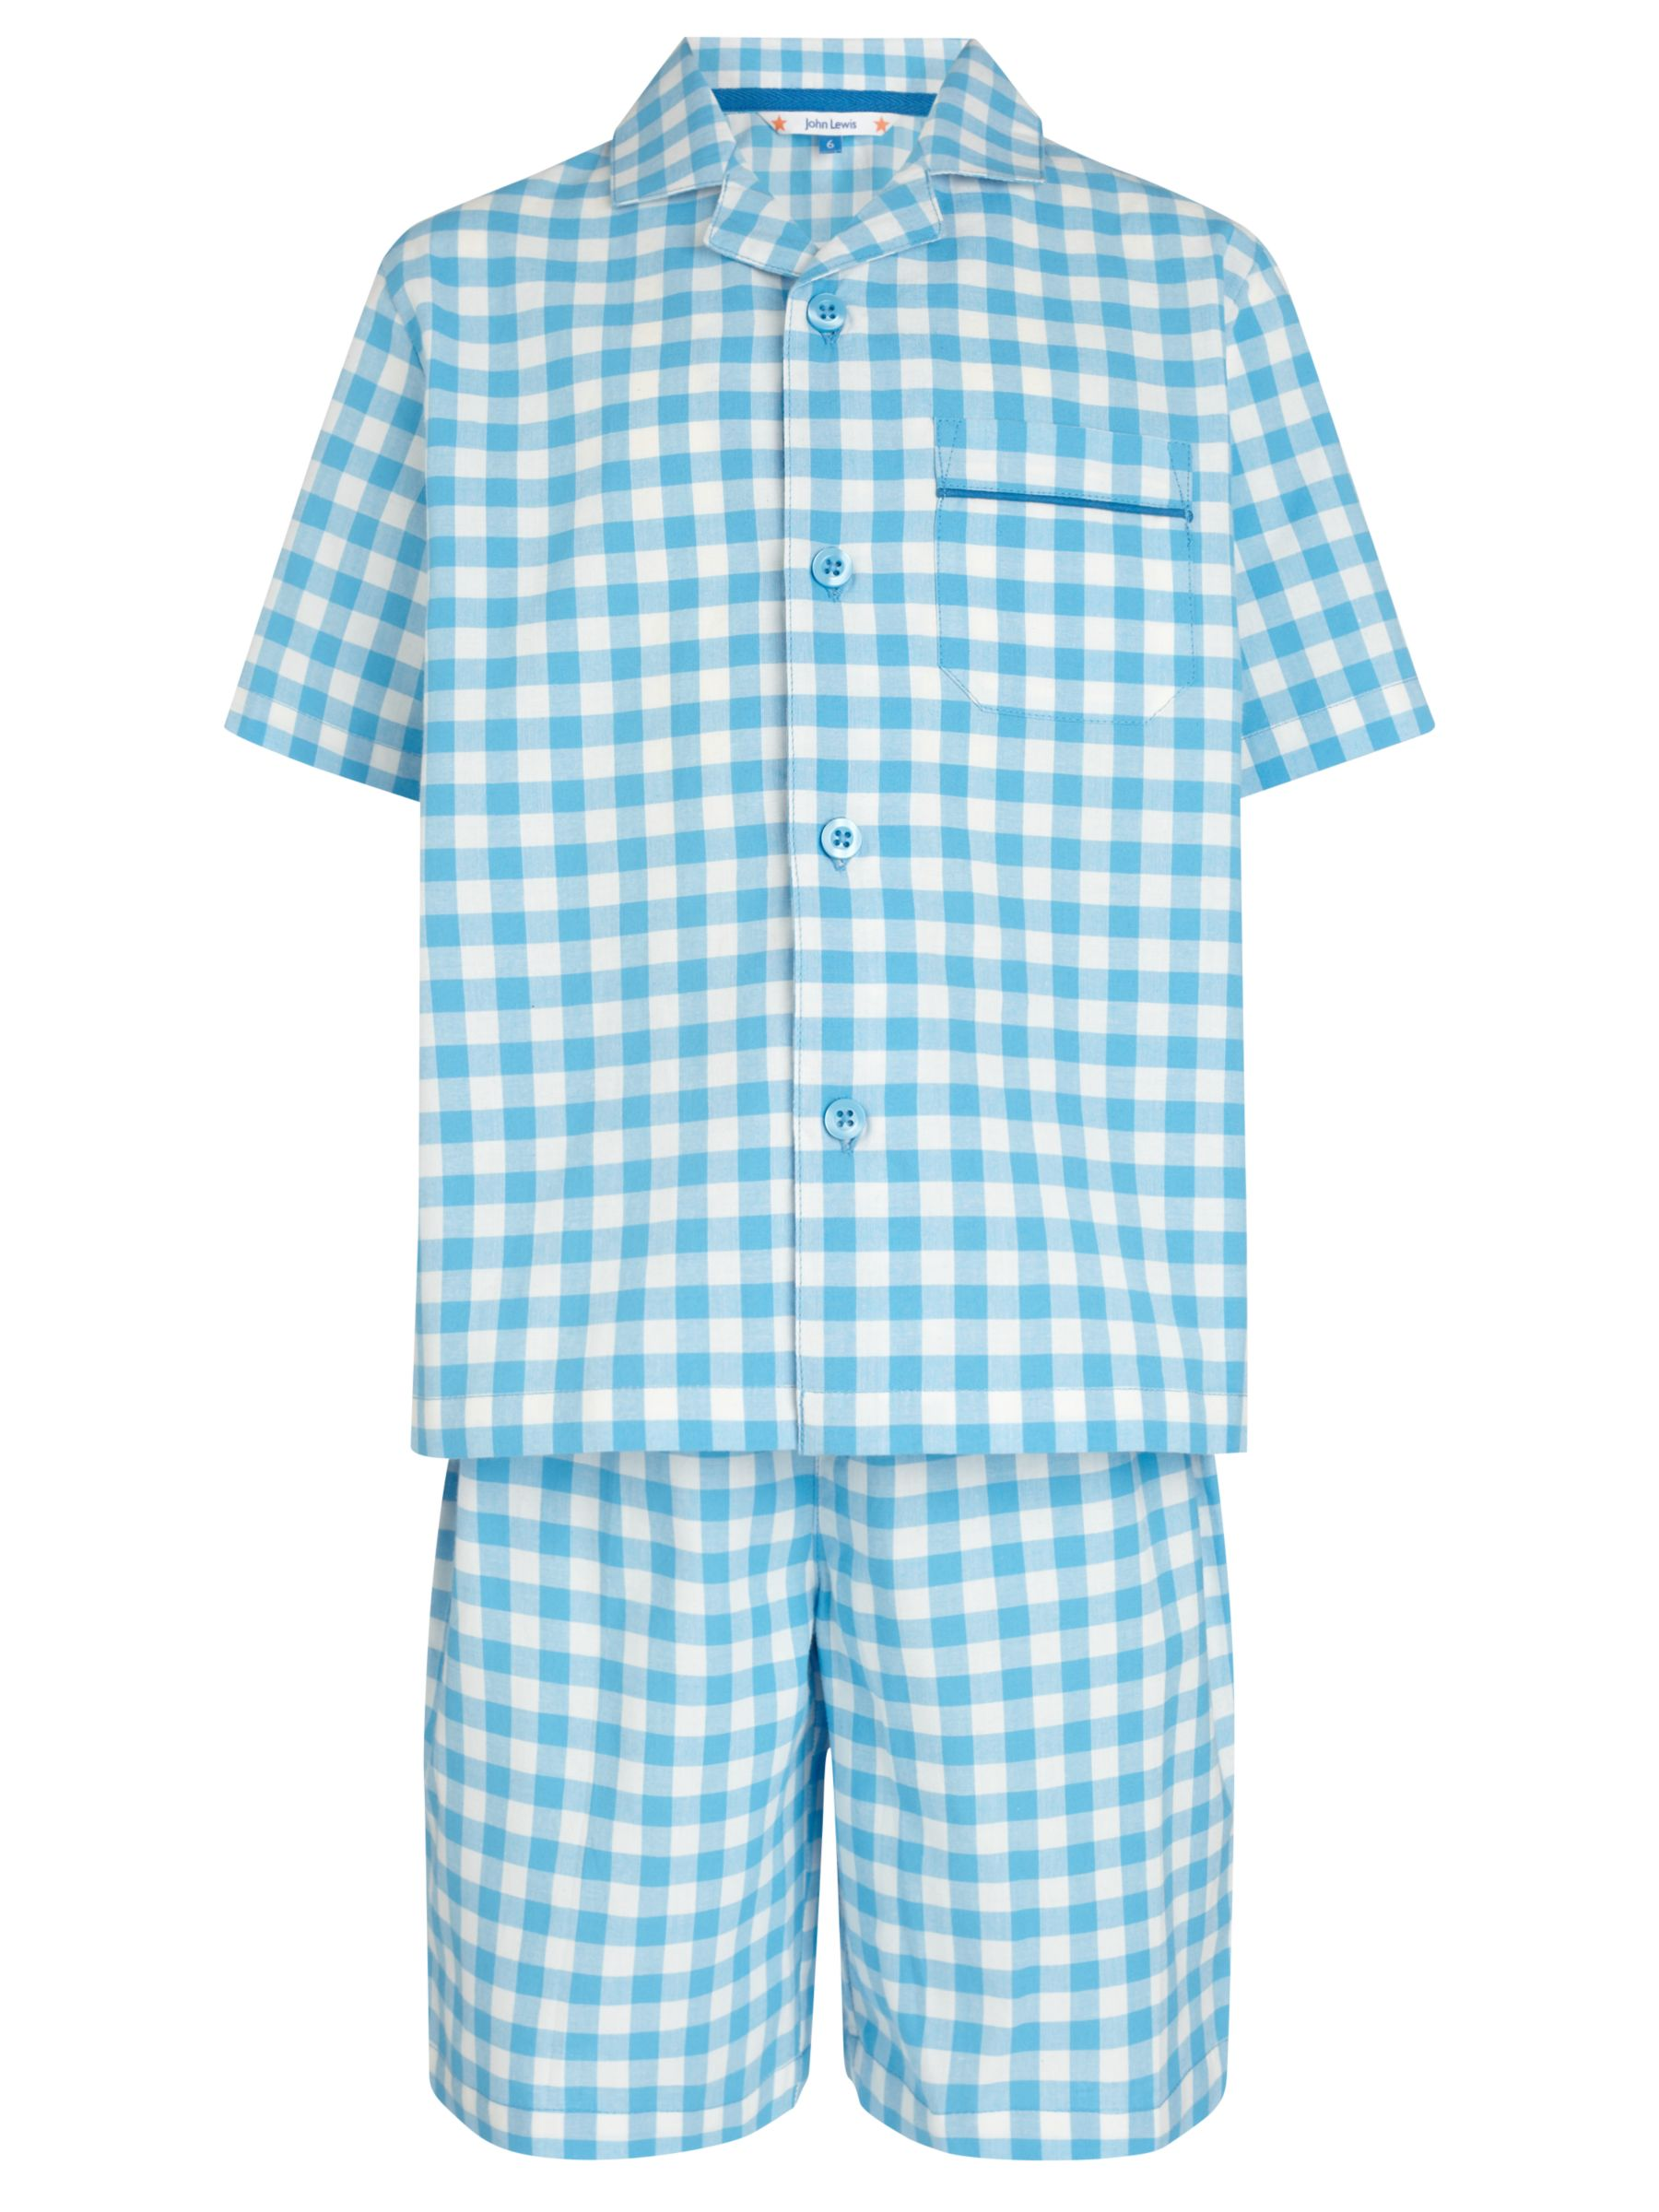 John Lewis Boy Gingham Short Pyjamas, Blue/White